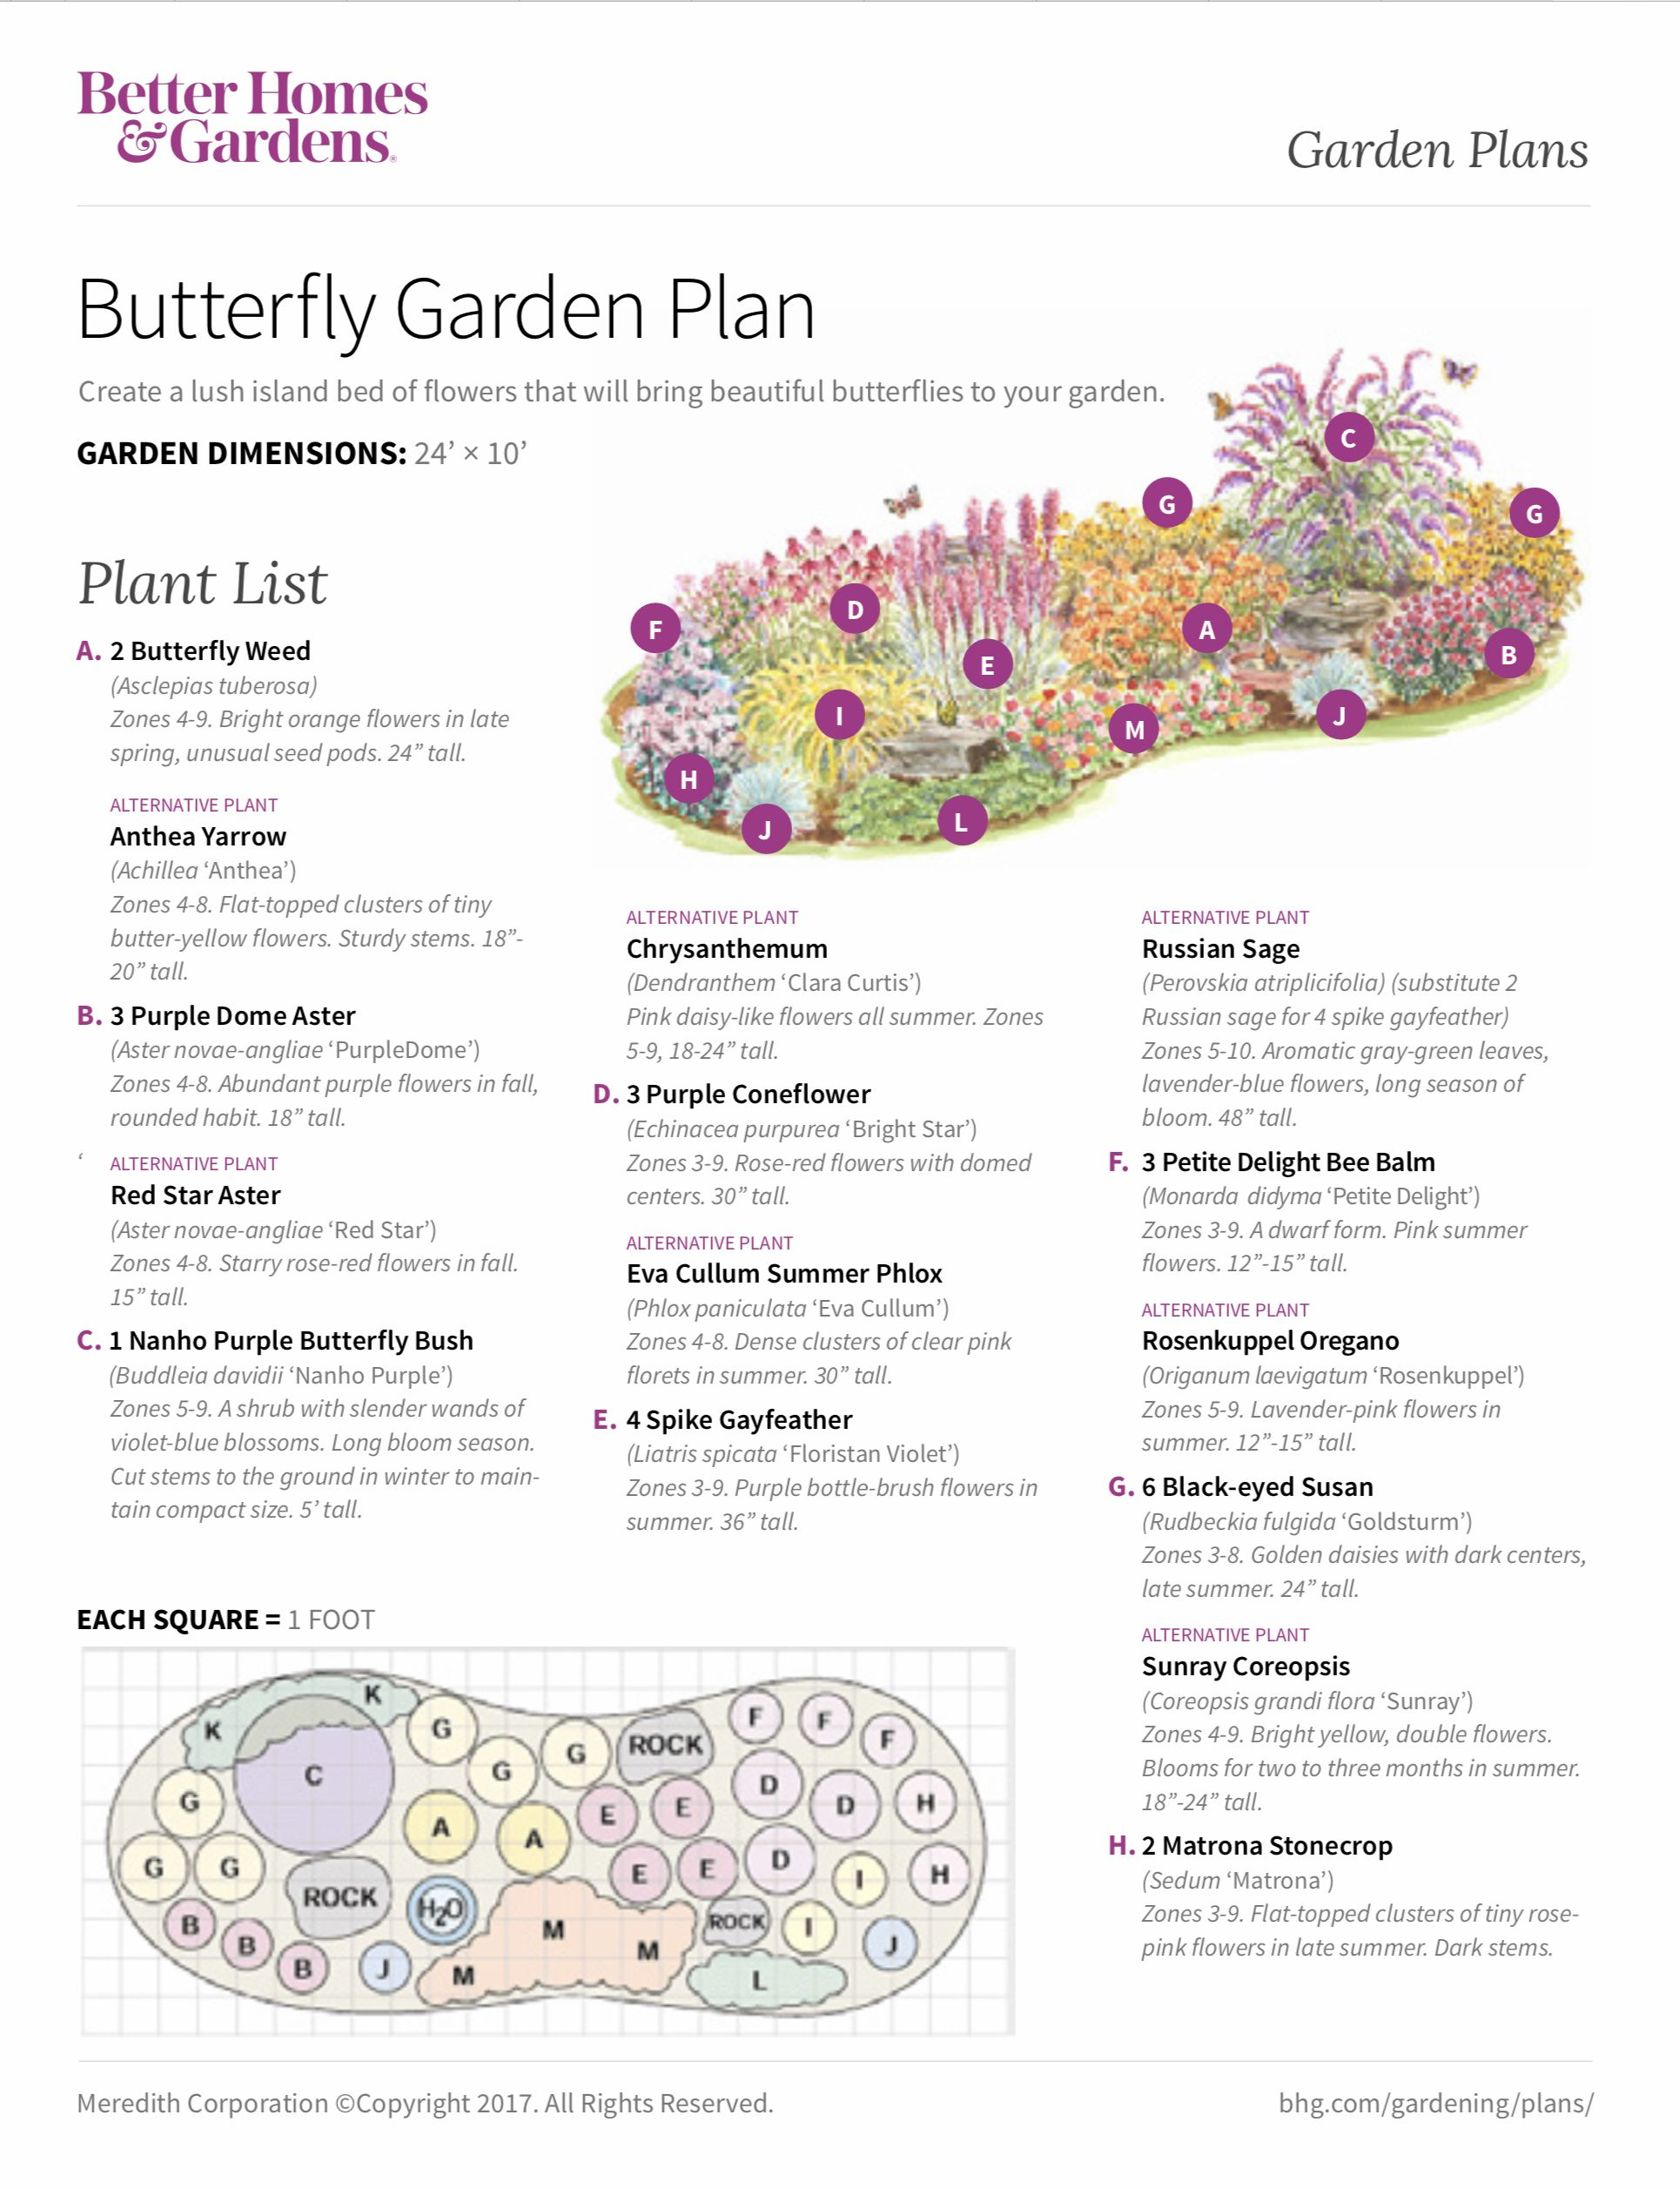 60c020bade1b17b183966c8826f18911 - What Zone Is Long Island For Gardening